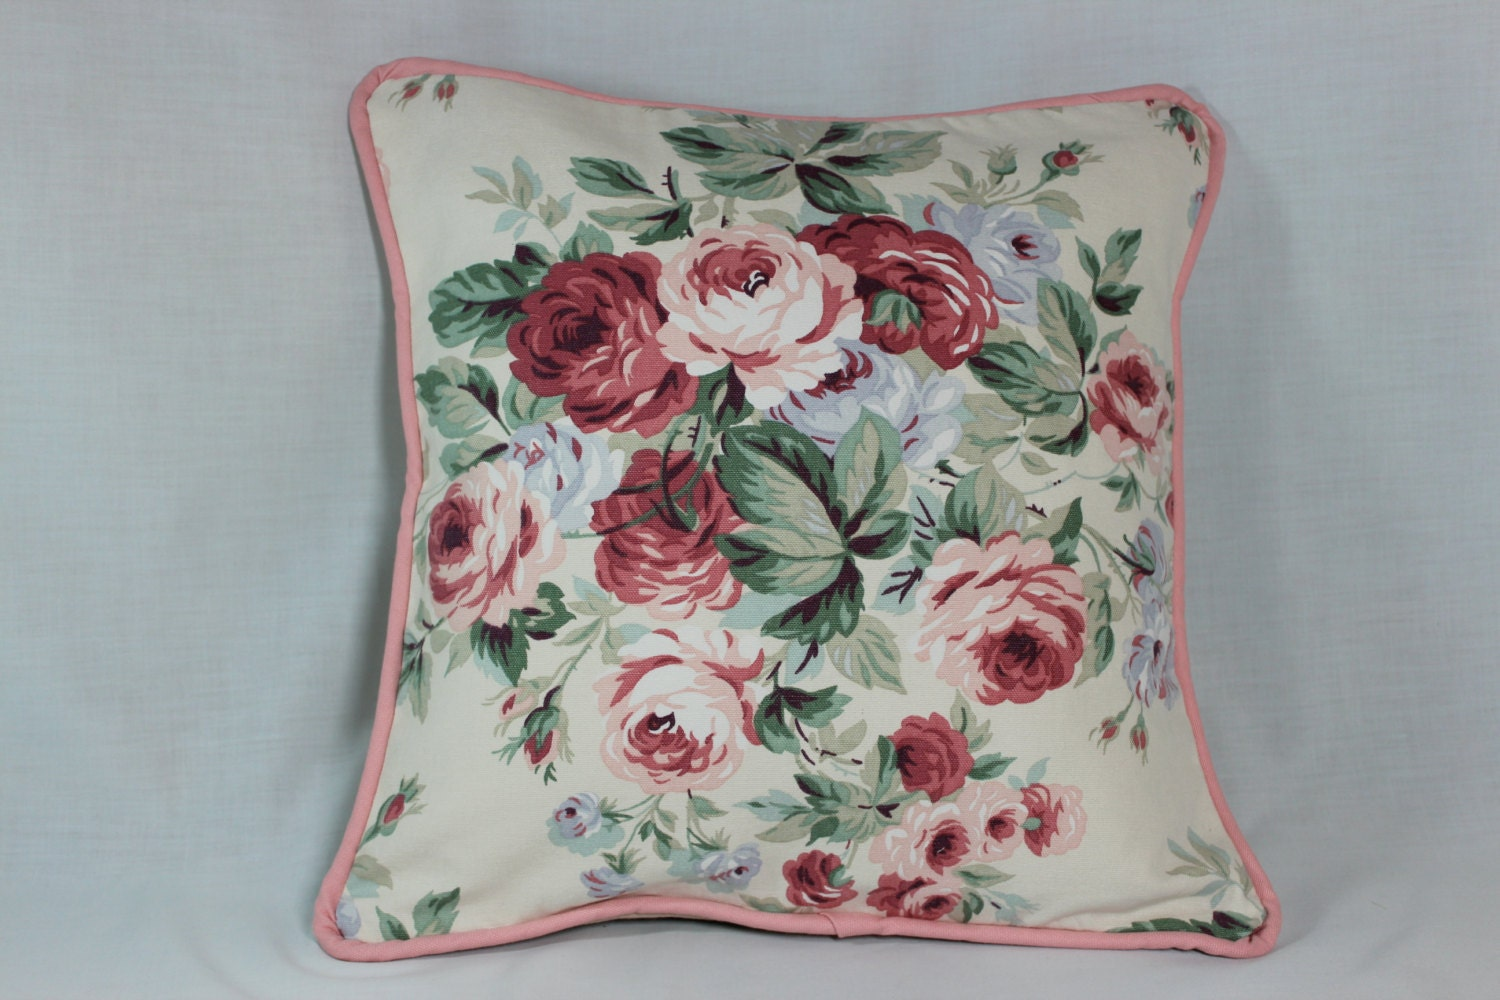 Shabby Chic Decorative Pillows : Cabbage Rose Shabby Chic Throw Pillow Cover by ozmamade on Etsy